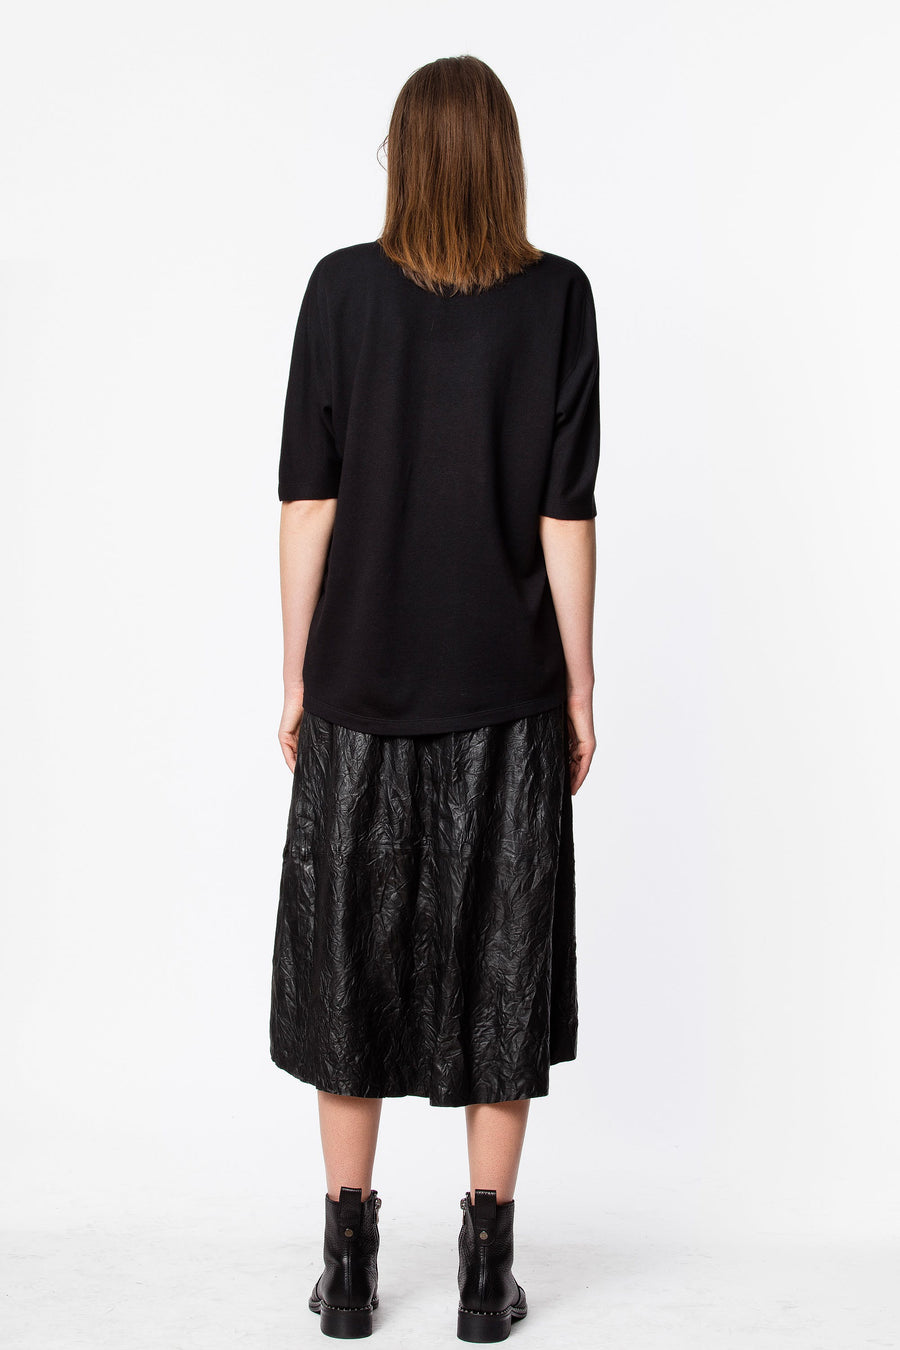 Zadig & Voltaire Joslin Leather Skirt